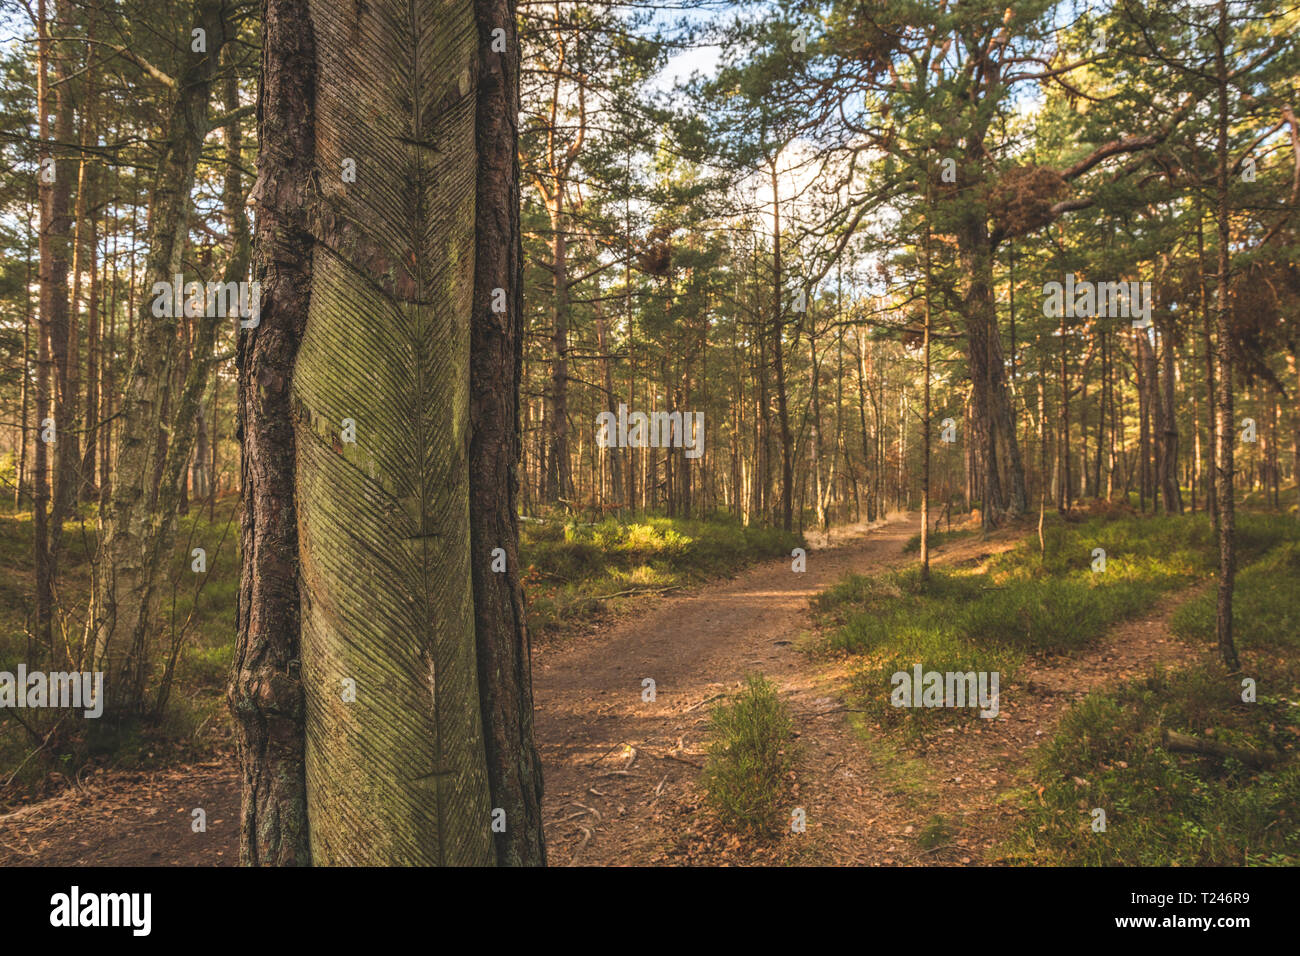 Germany, Mecklenburg-Western Pomerania, Darss, forest path and pine trees with incisions for tapping resin - Stock Image